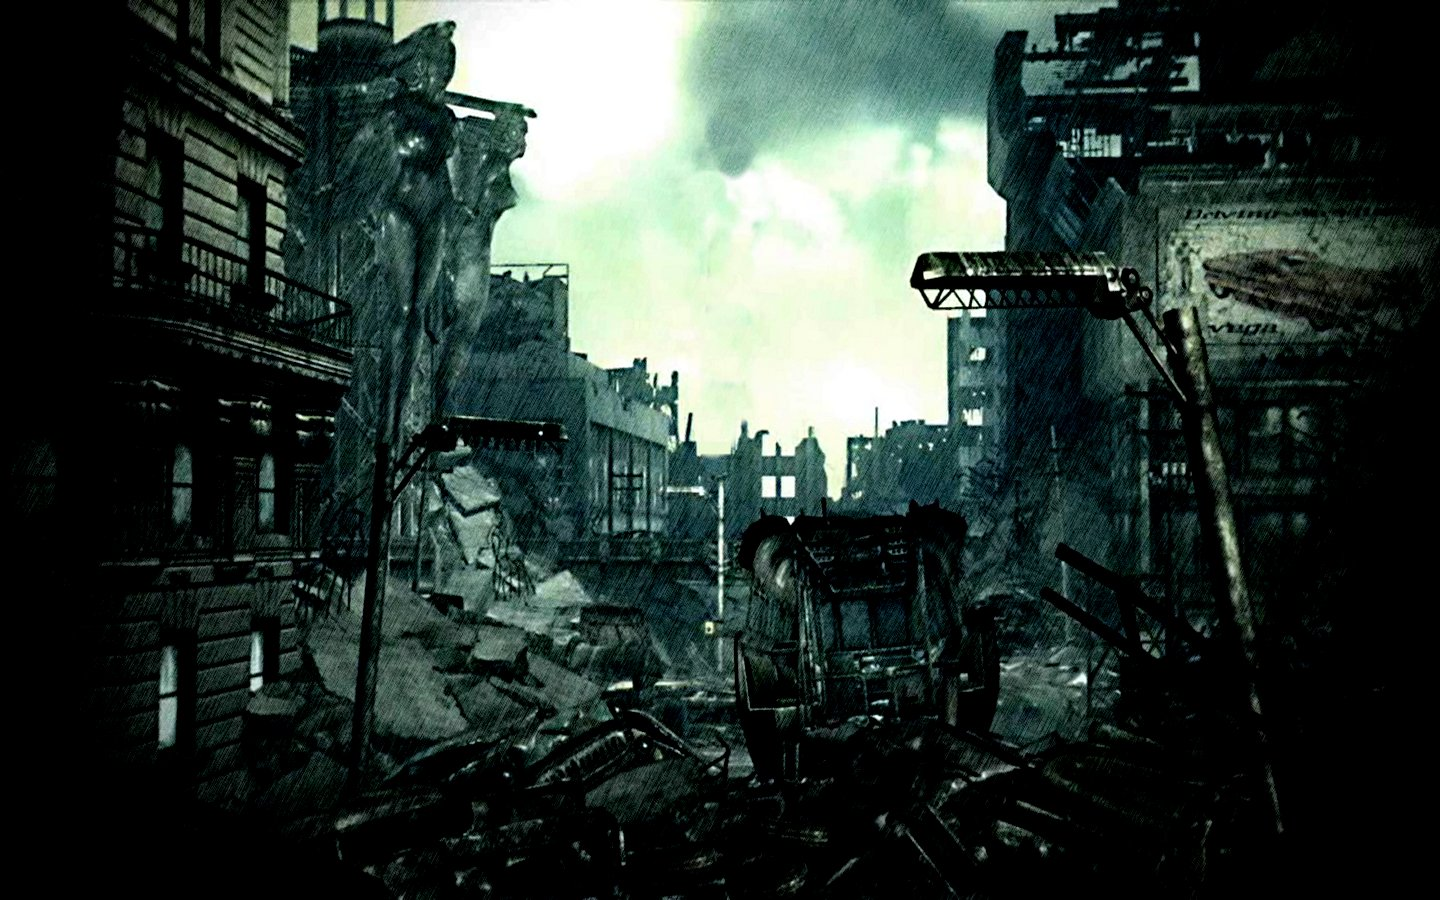 destroyed city wallpaper Collection 64 1440x900